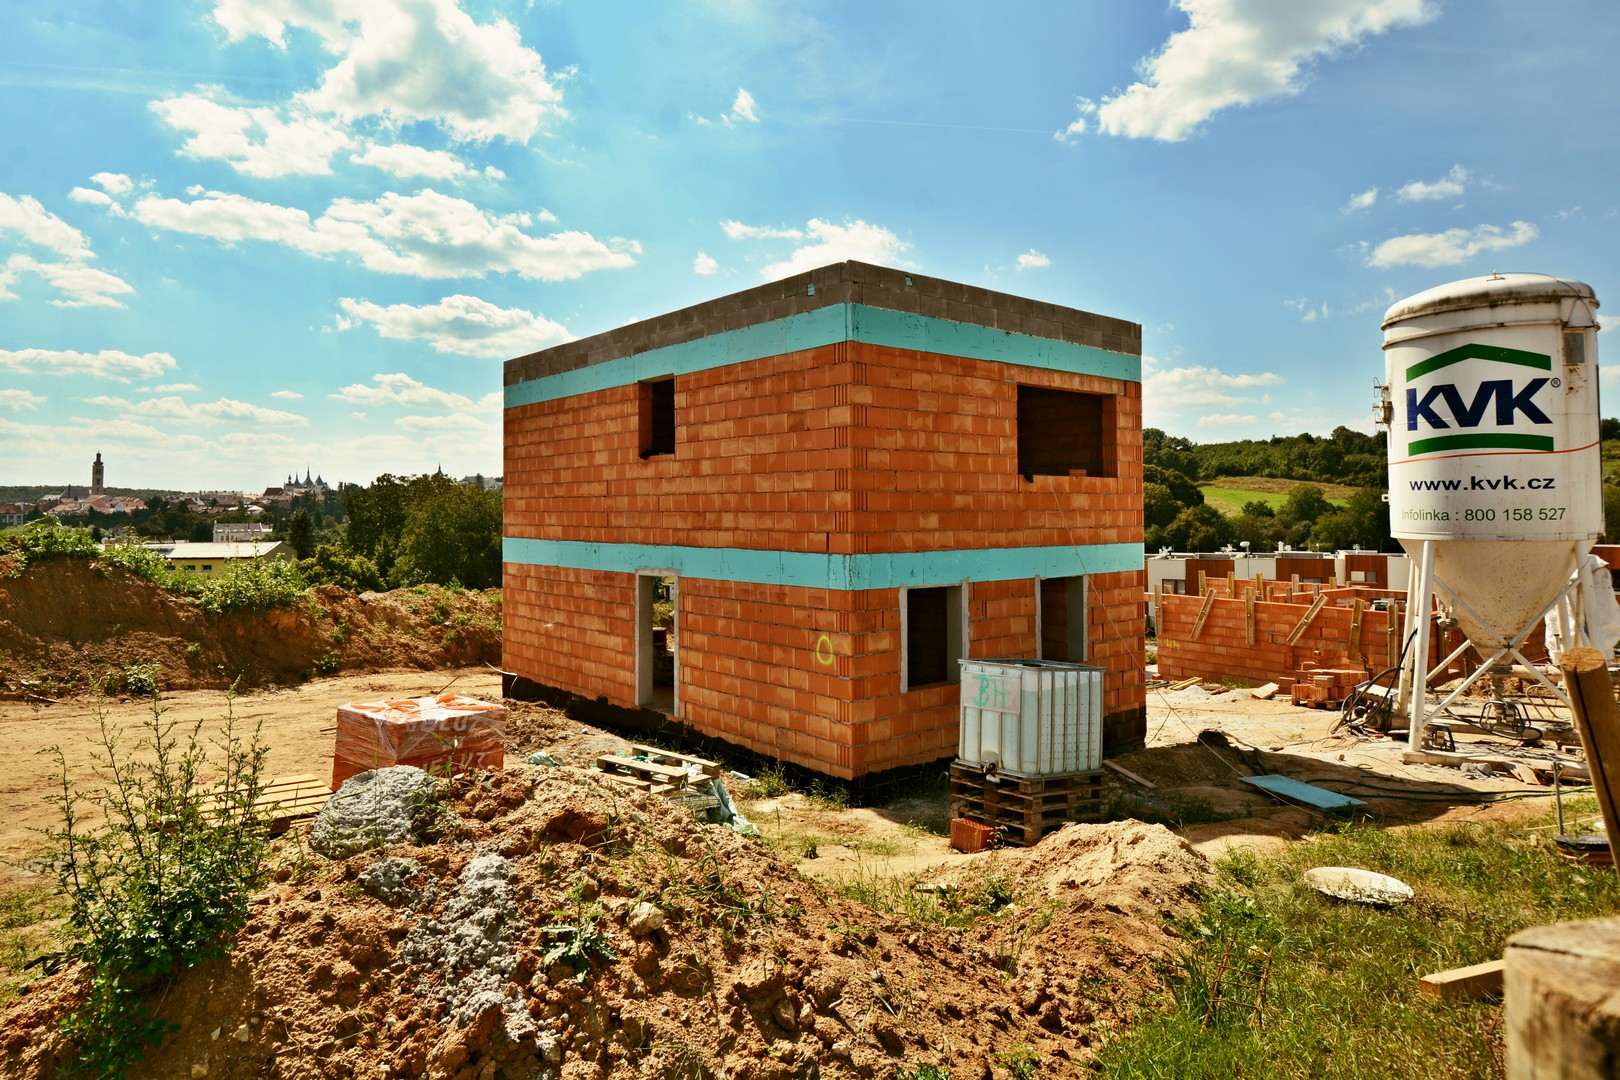 News from construction - 23rd August 2016